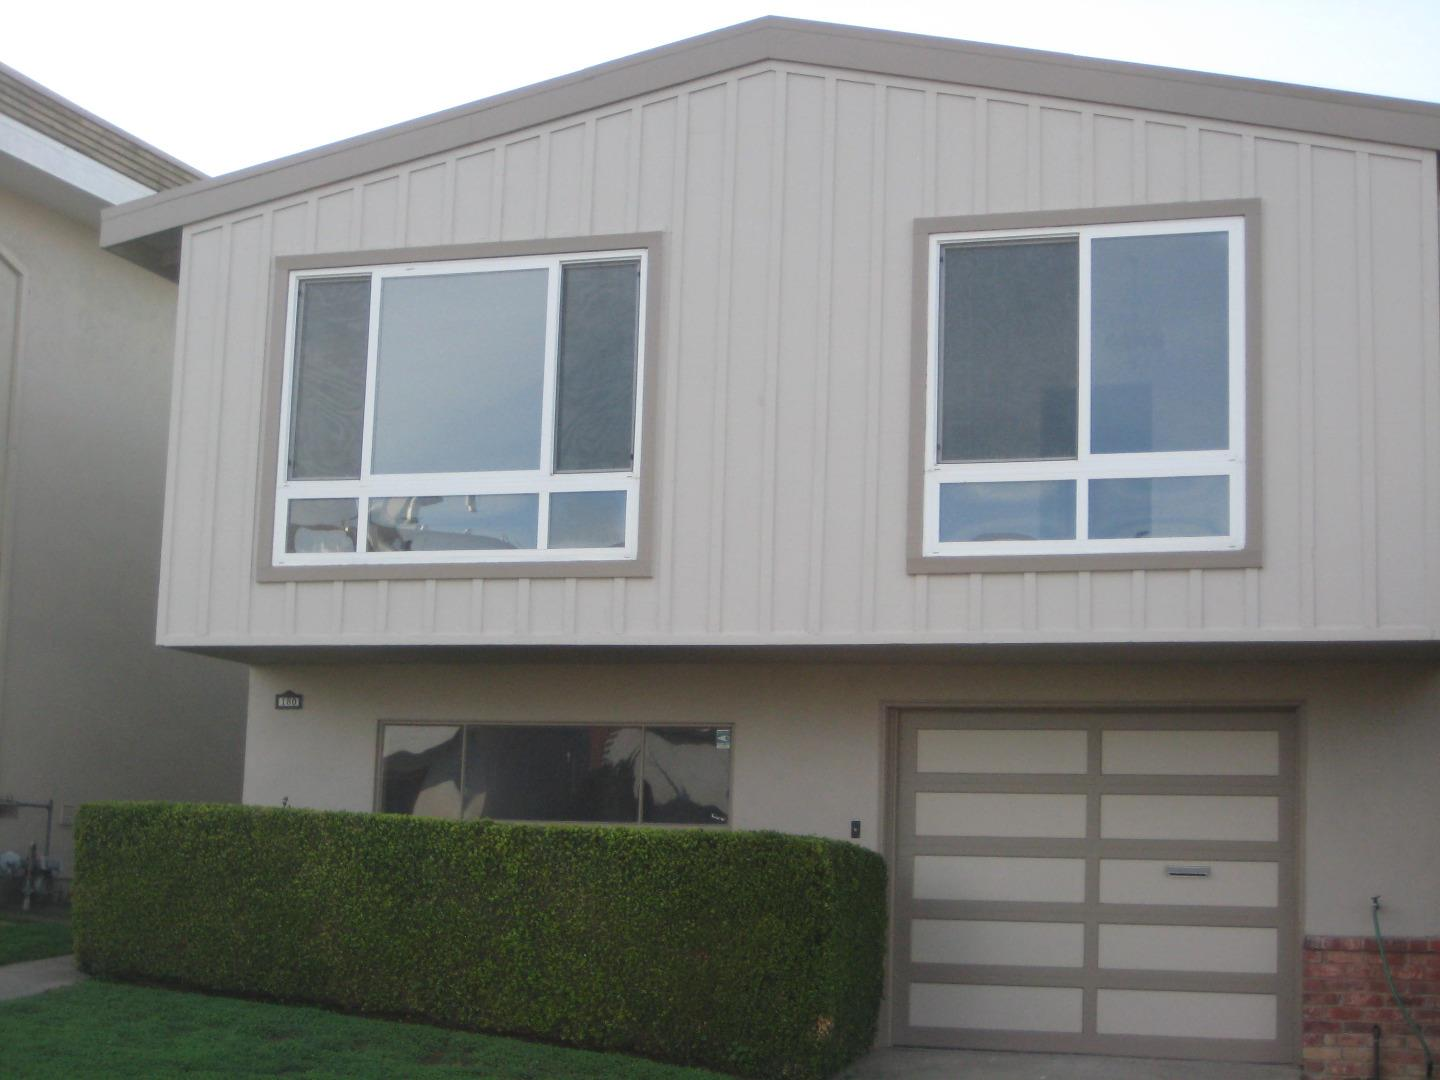 180 Mirada Dr, Daly City, CA